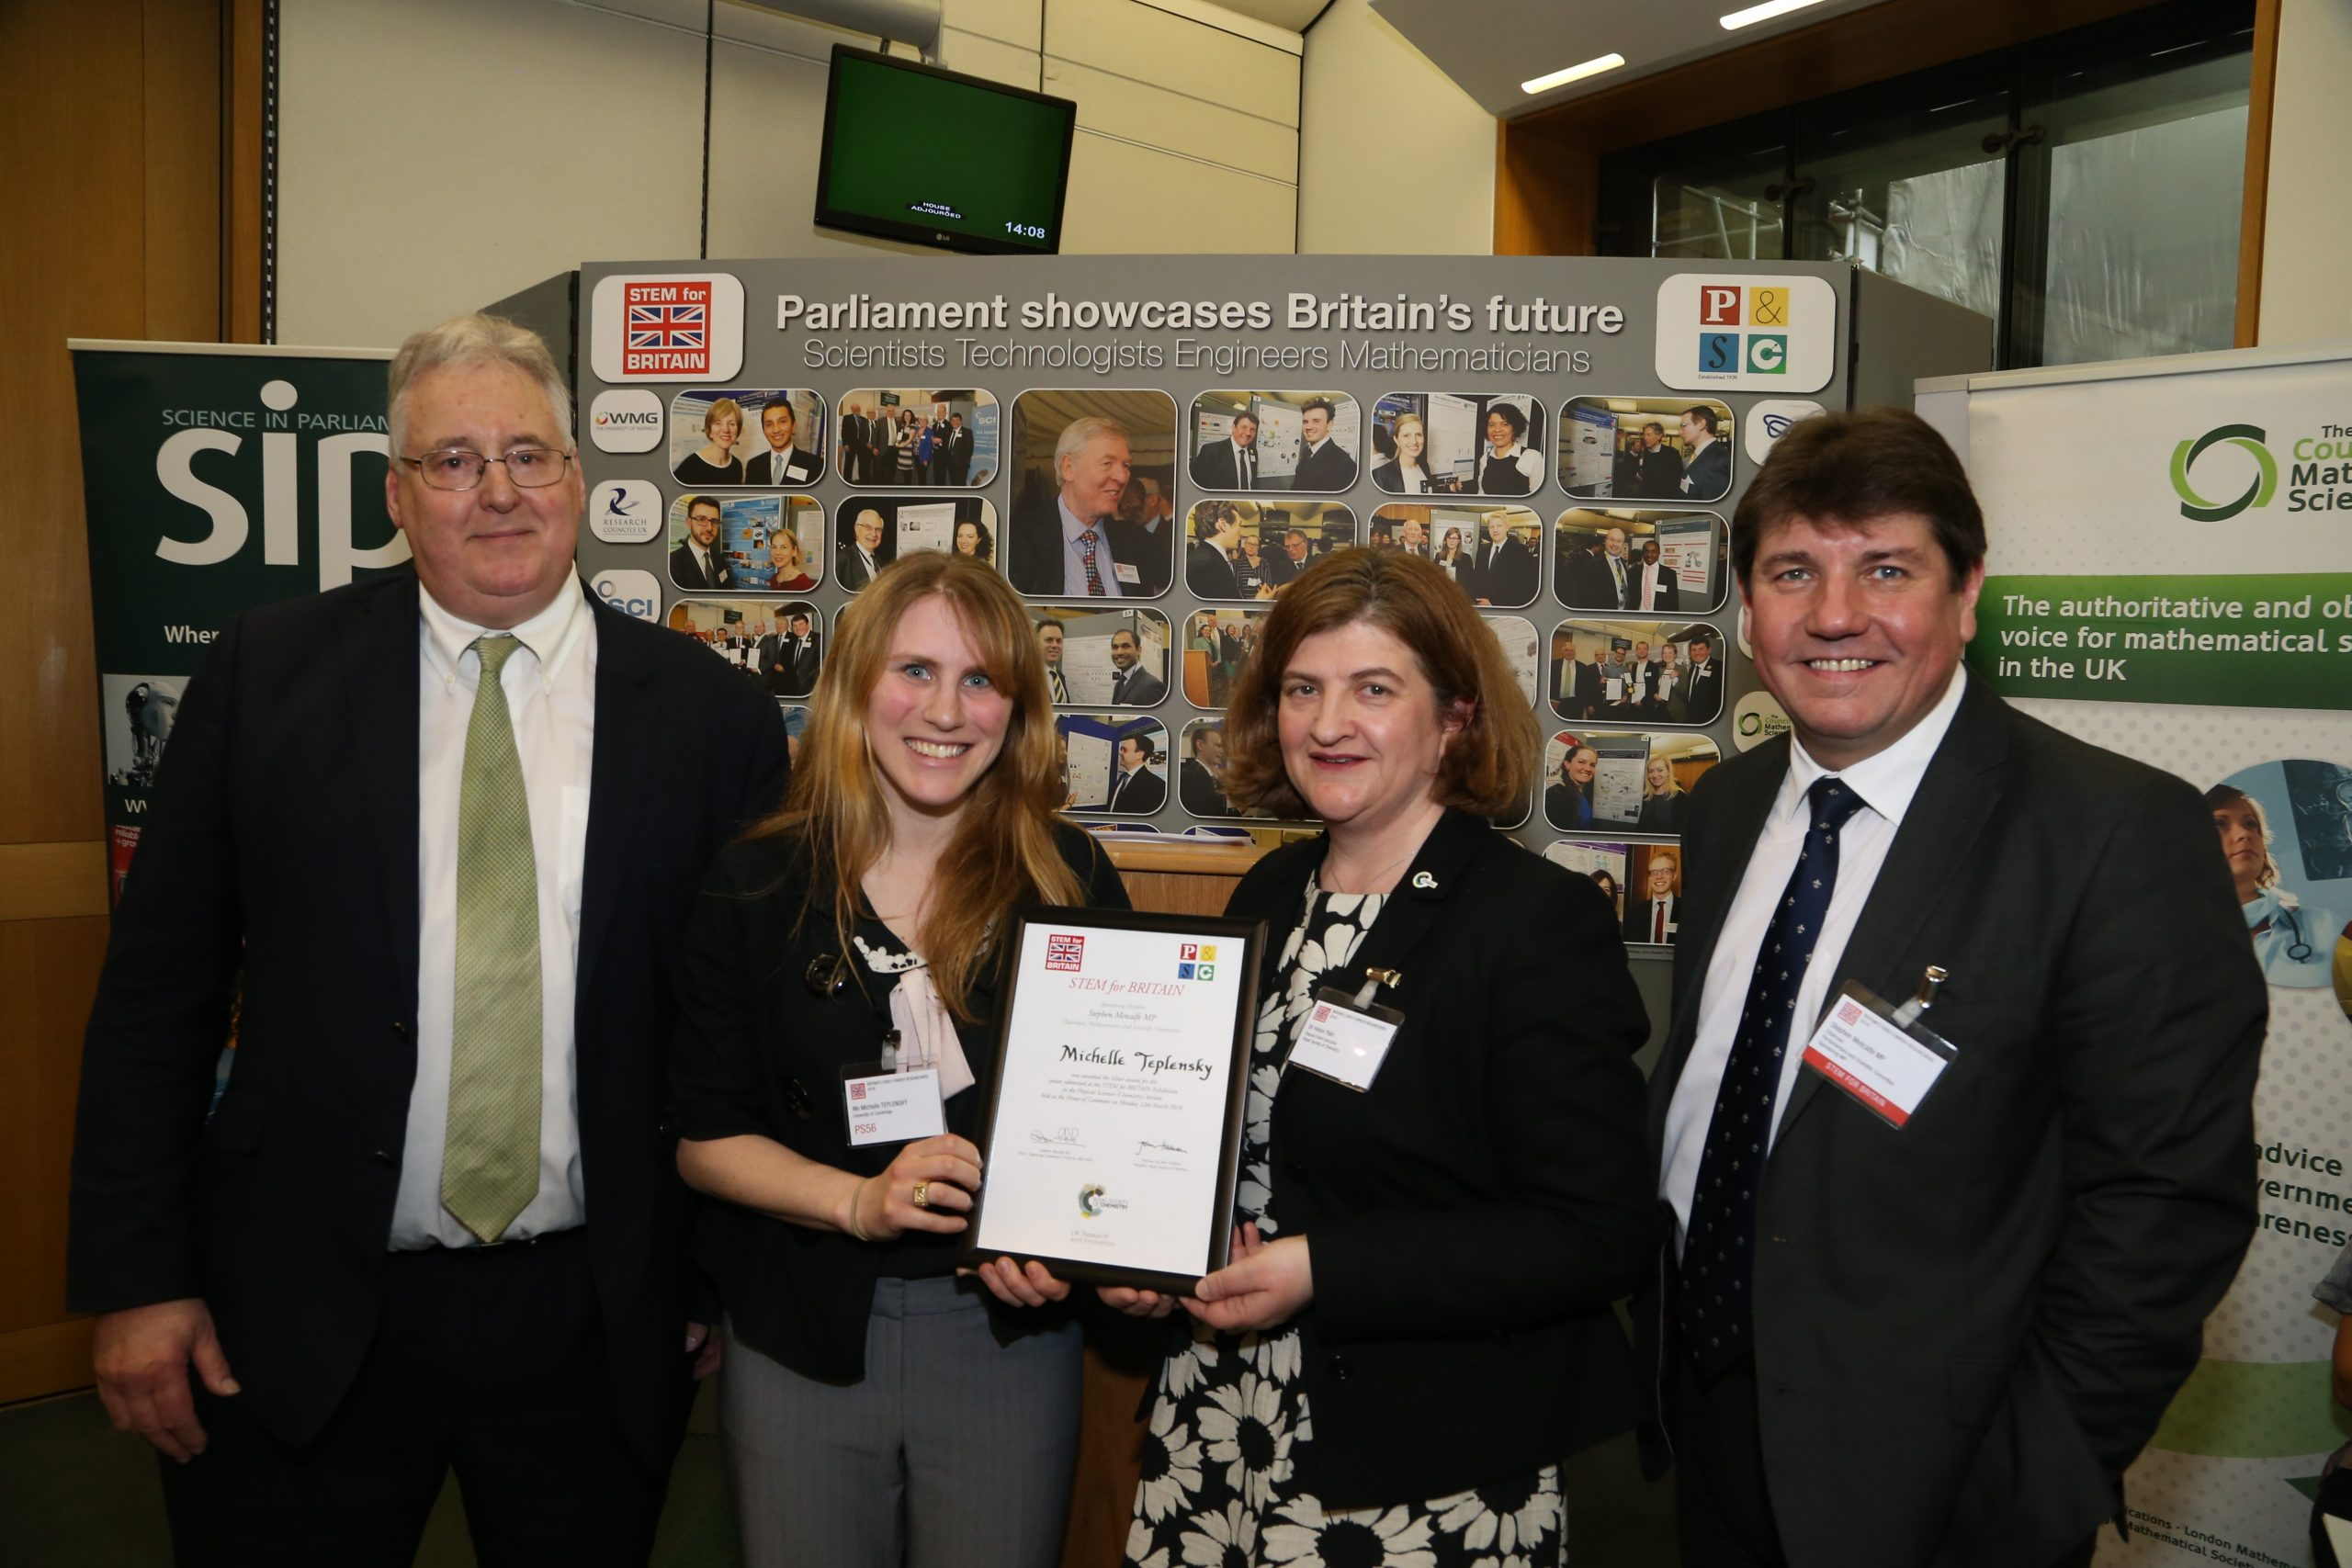 Scholar wins Chemistry prize at British Parliament